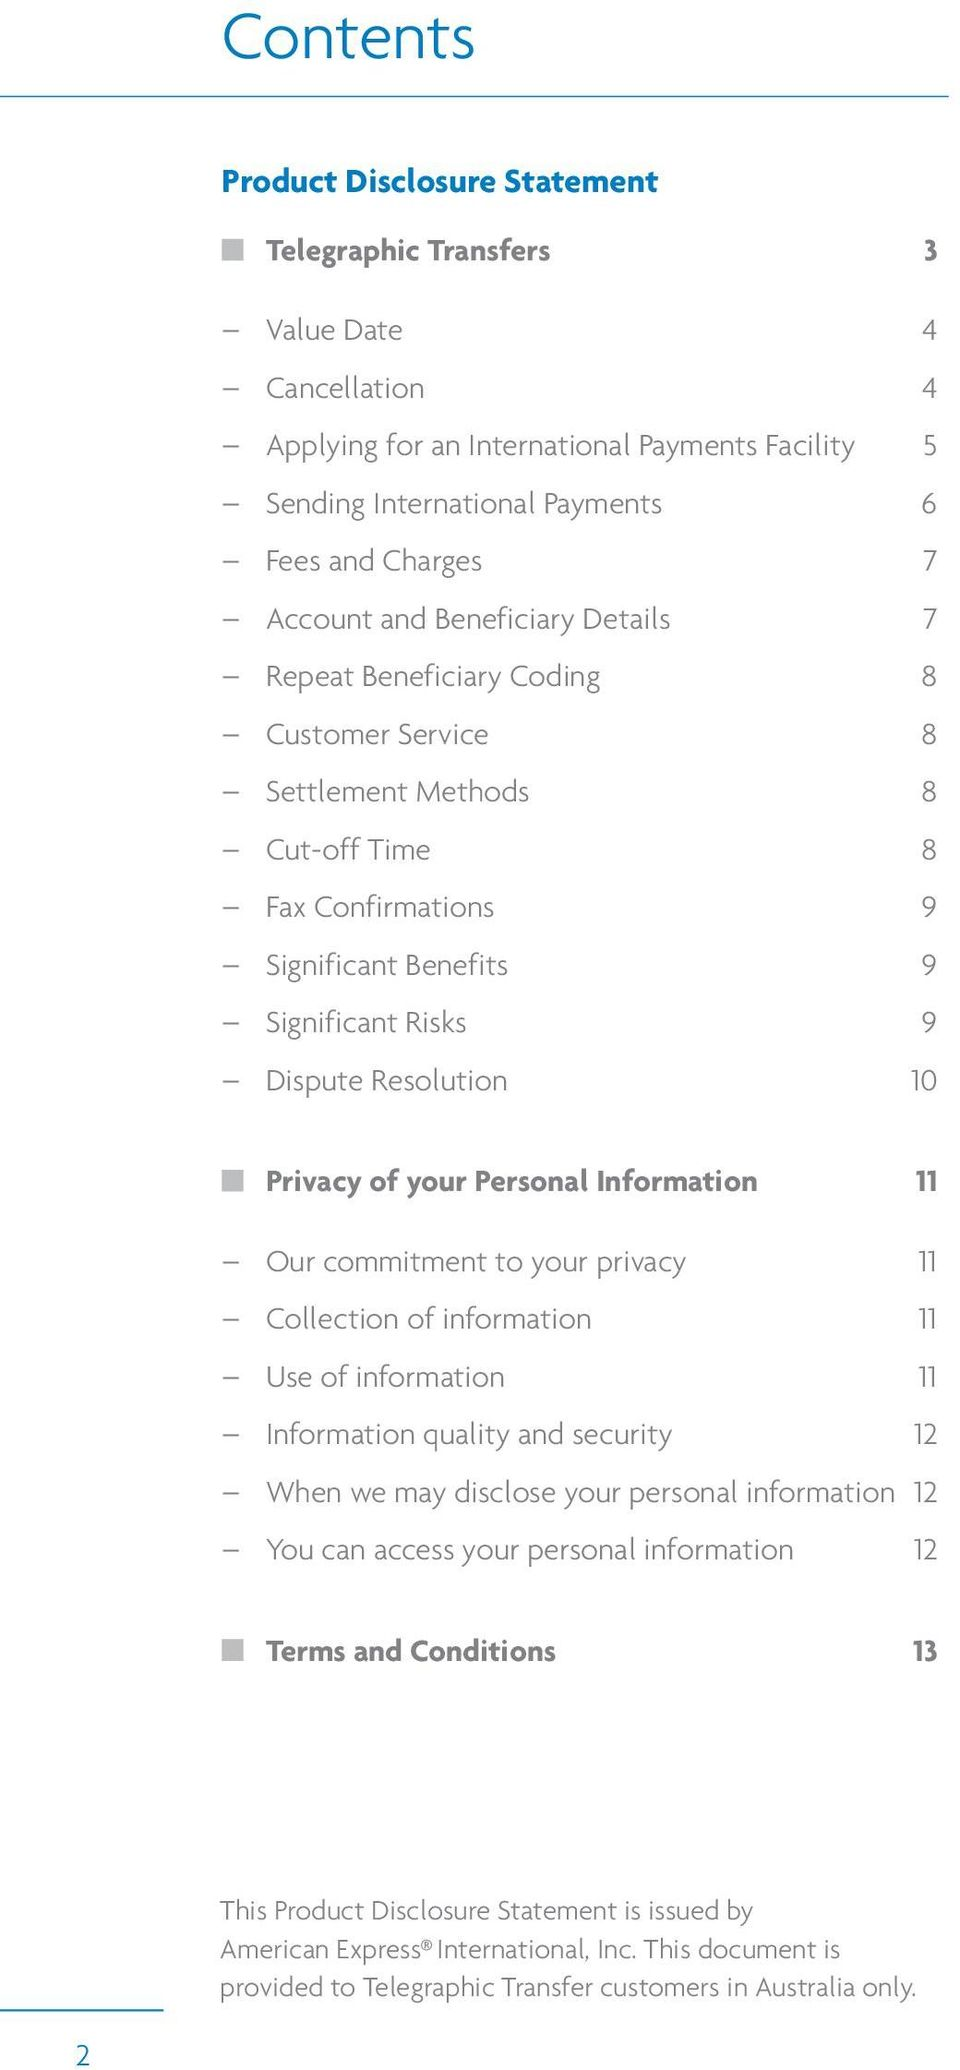 Privacy of your Personal Information 11 Our commitment to your privacy 11 Collection of information 11 Use of information 11 Information quality and security 12 When we may disclose your personal